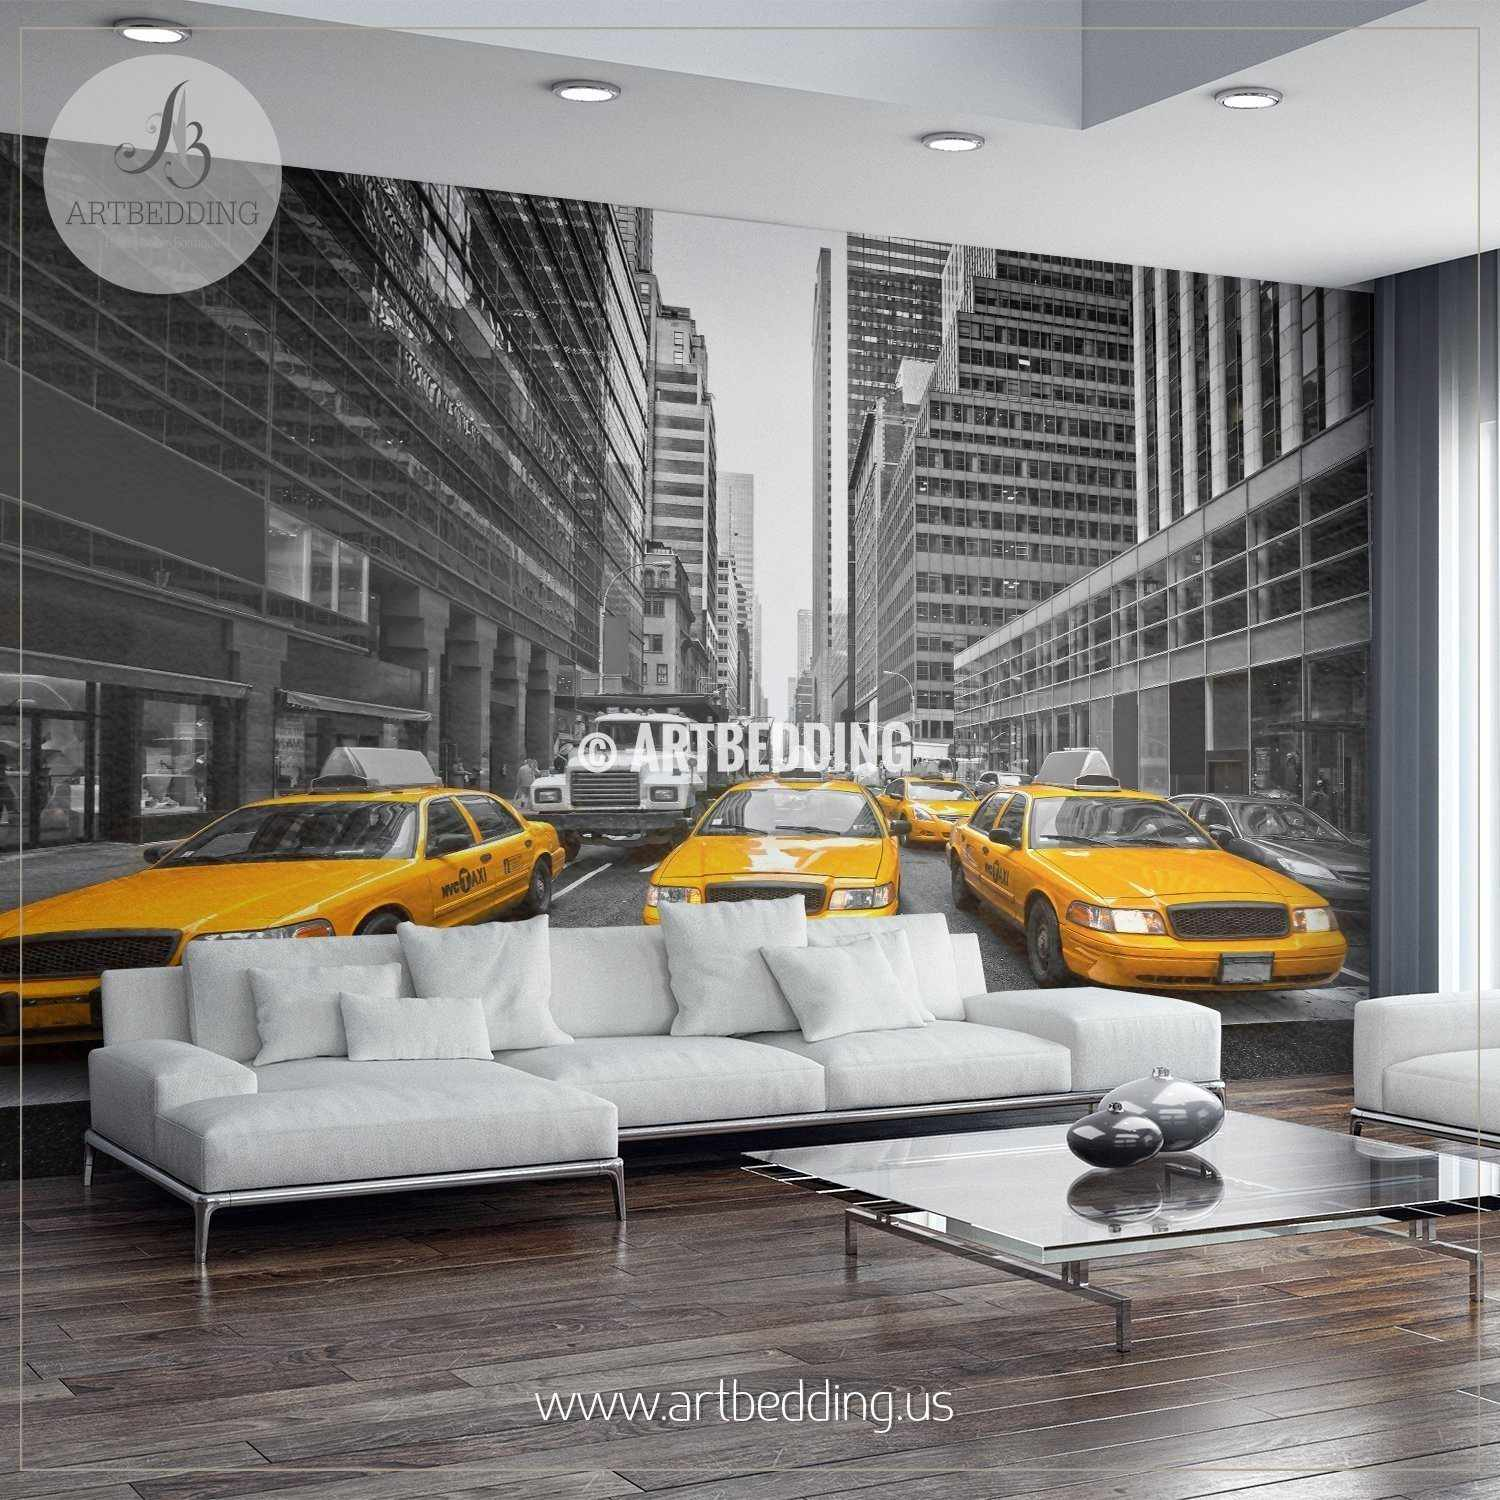 Adorable 60 city wall murals inspiration of city wall murals city wall murals wall murals peel and stick vinyl self adhesive tagged london amipublicfo Gallery